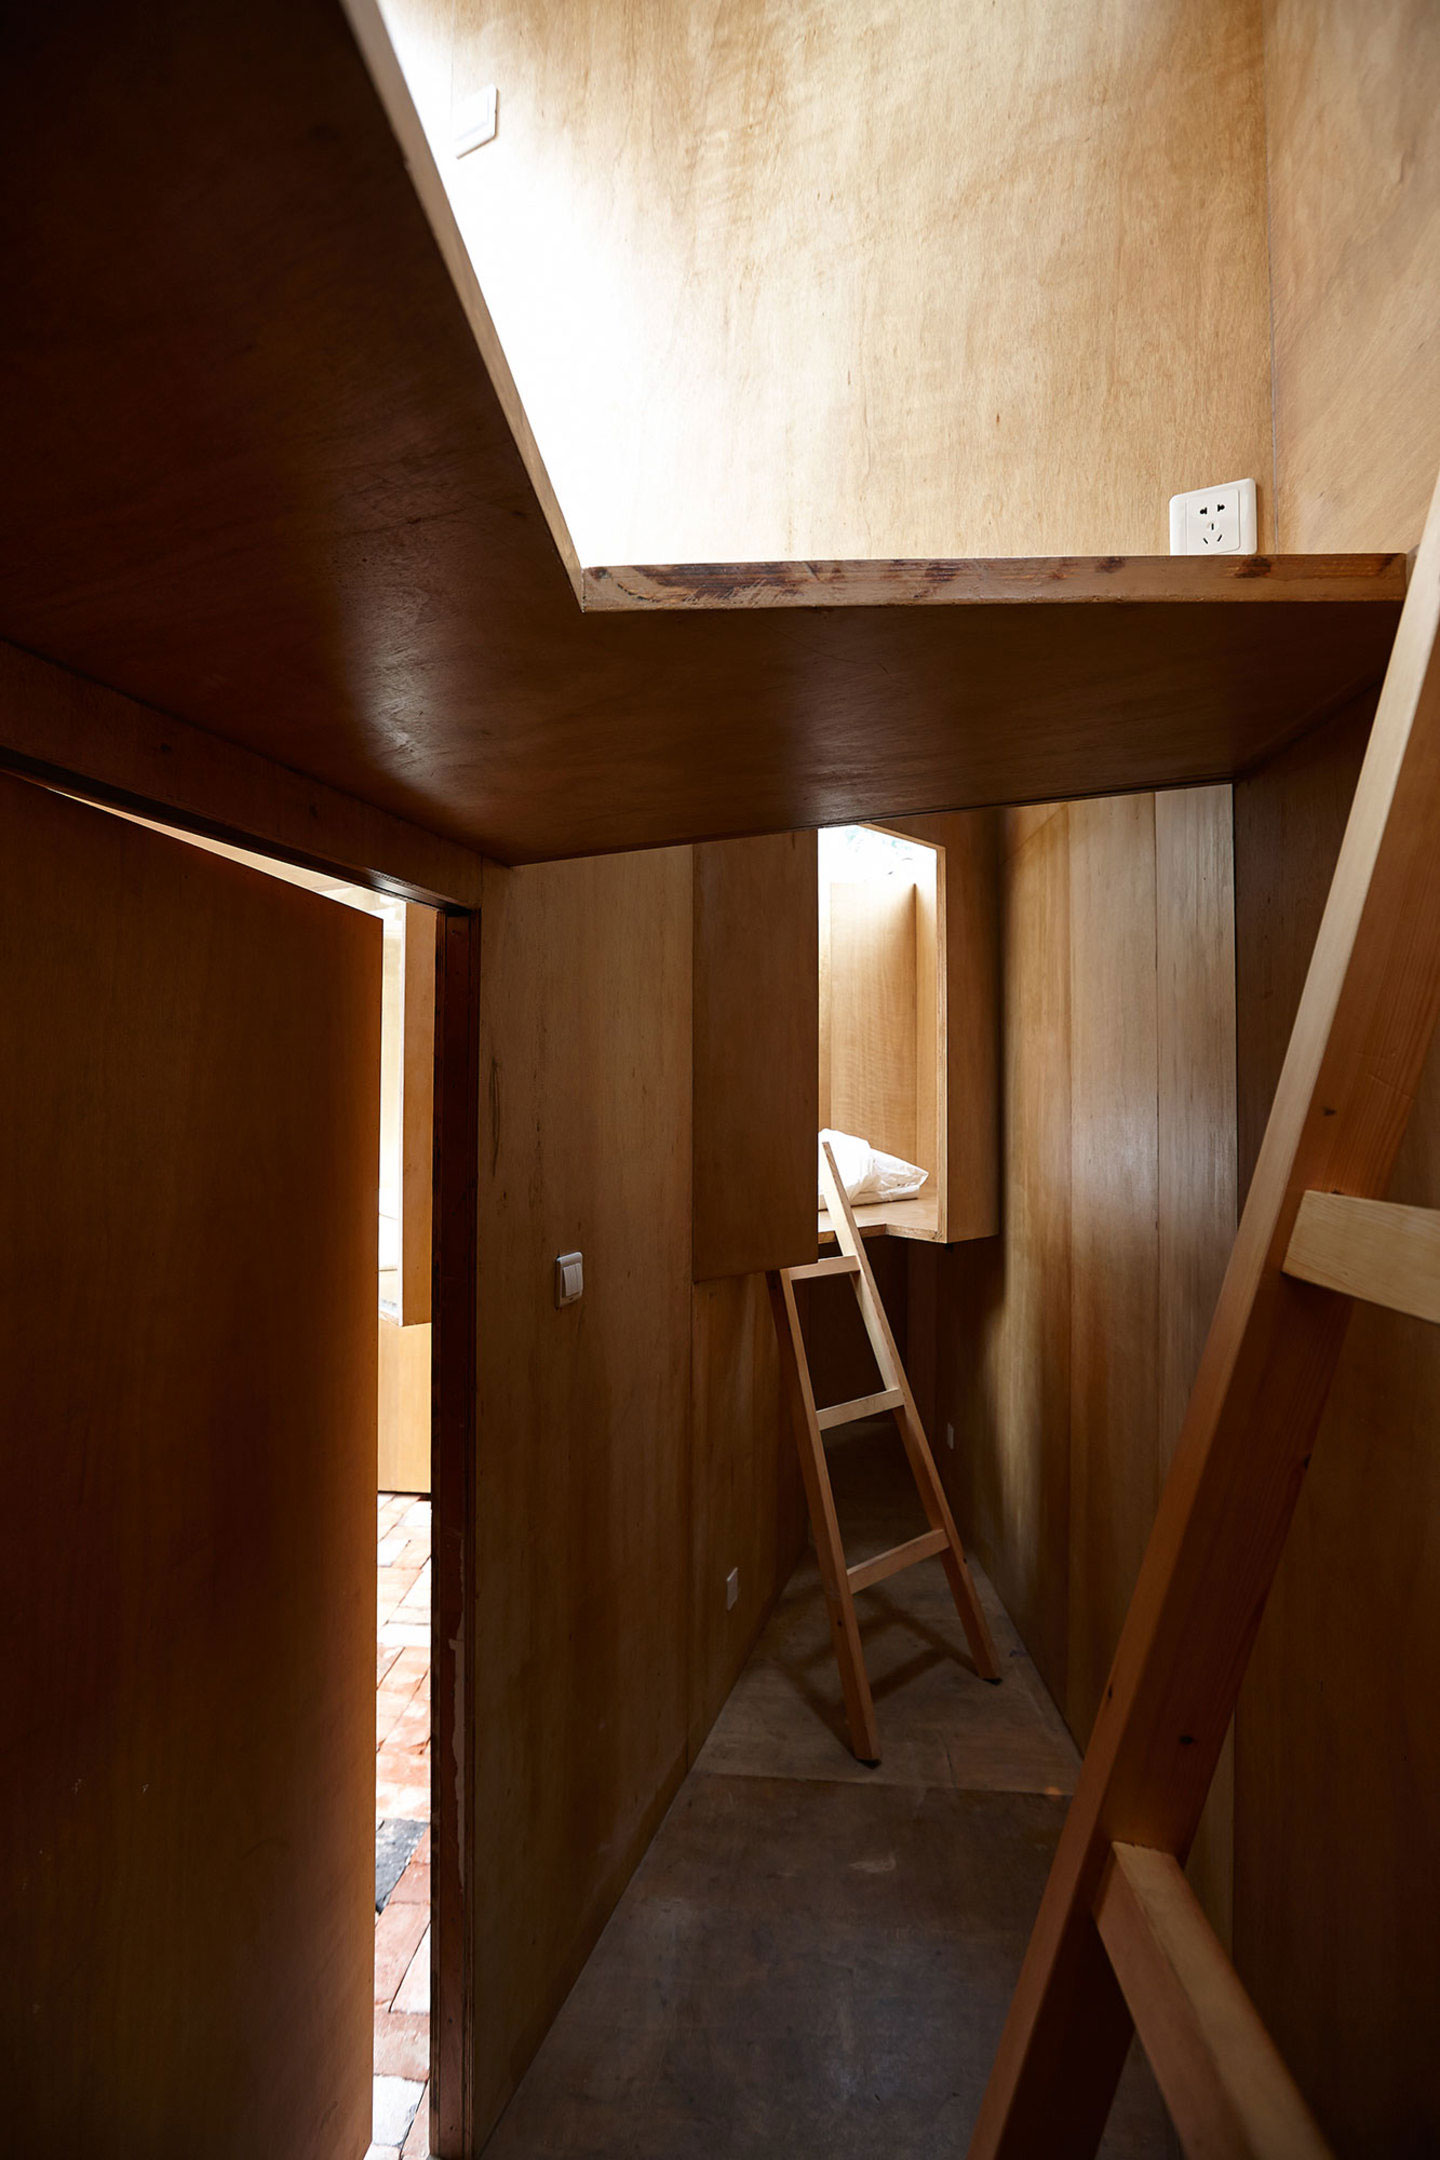 Micro-Housing: Hutong Experiments by Standardarchitecture. Photo by Su Shengliang | Yellowtrace